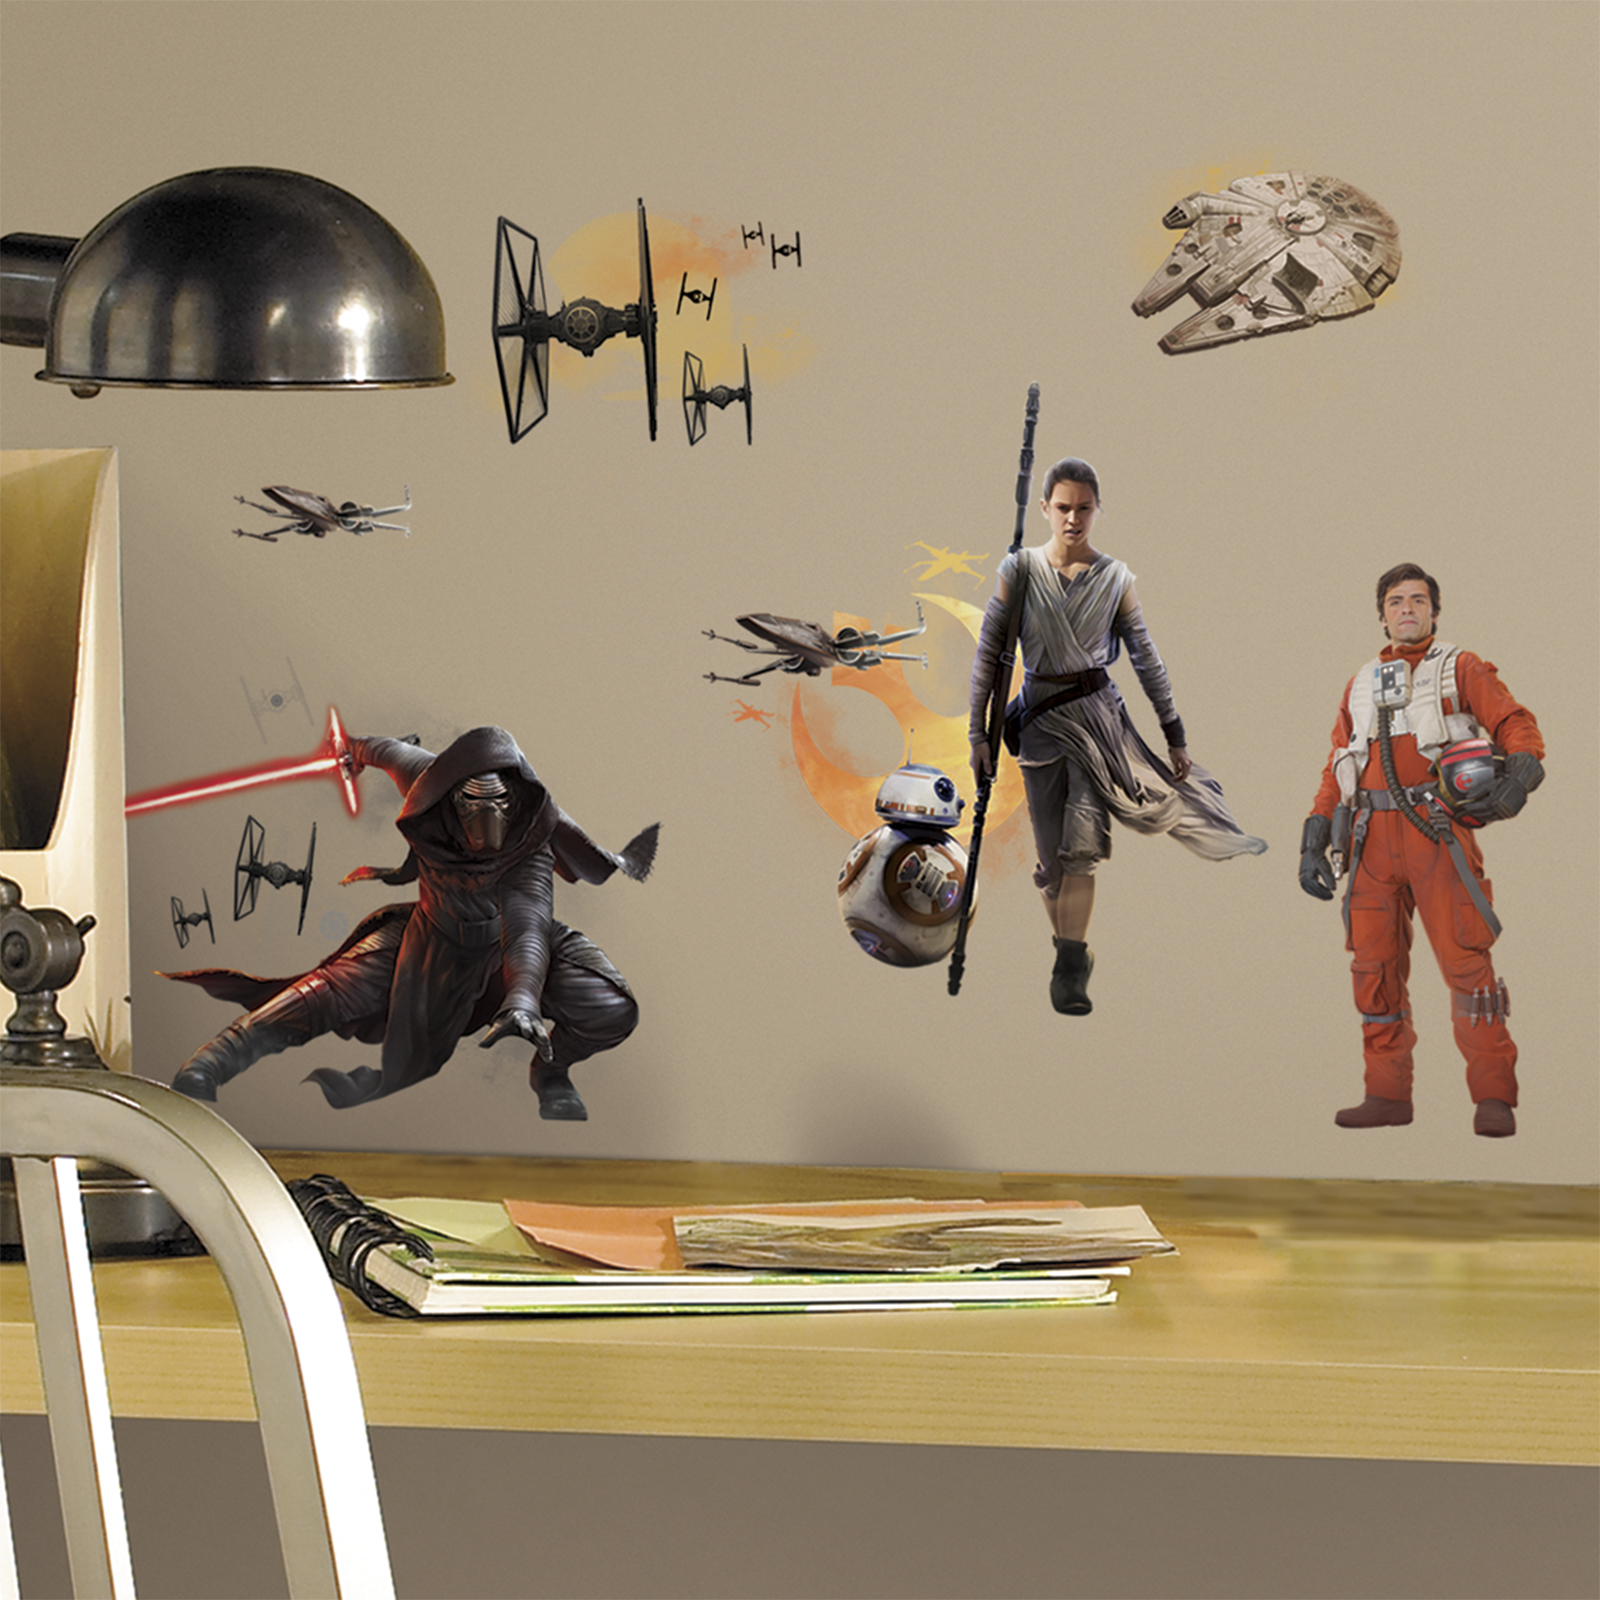 Star Wars 7 The Force Awakens Characters Peel And Stick Wall Decals